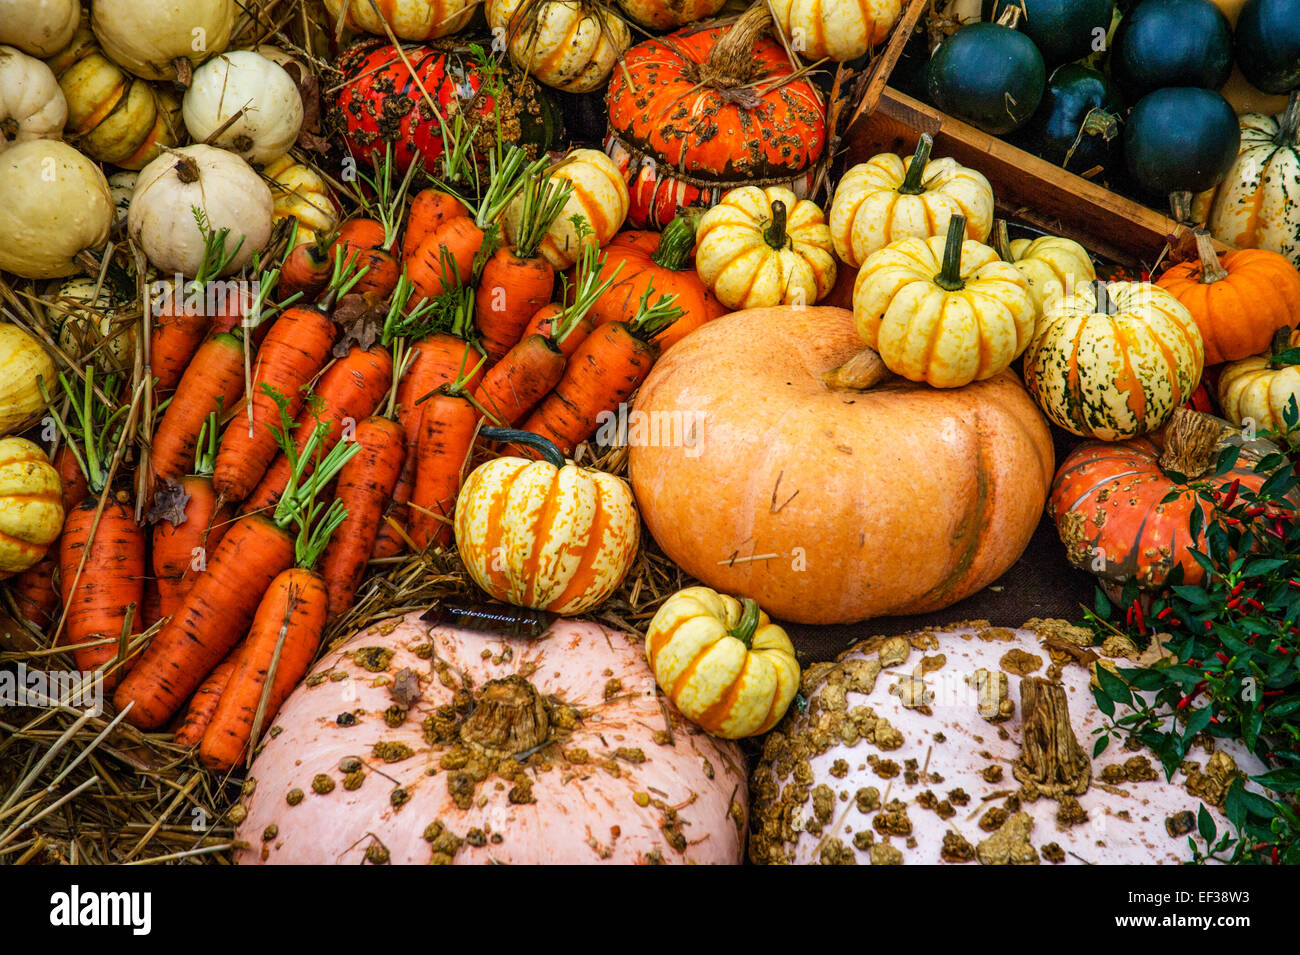 Pumpkins - Squashes and varieties of vegetables on display. - Stock Image